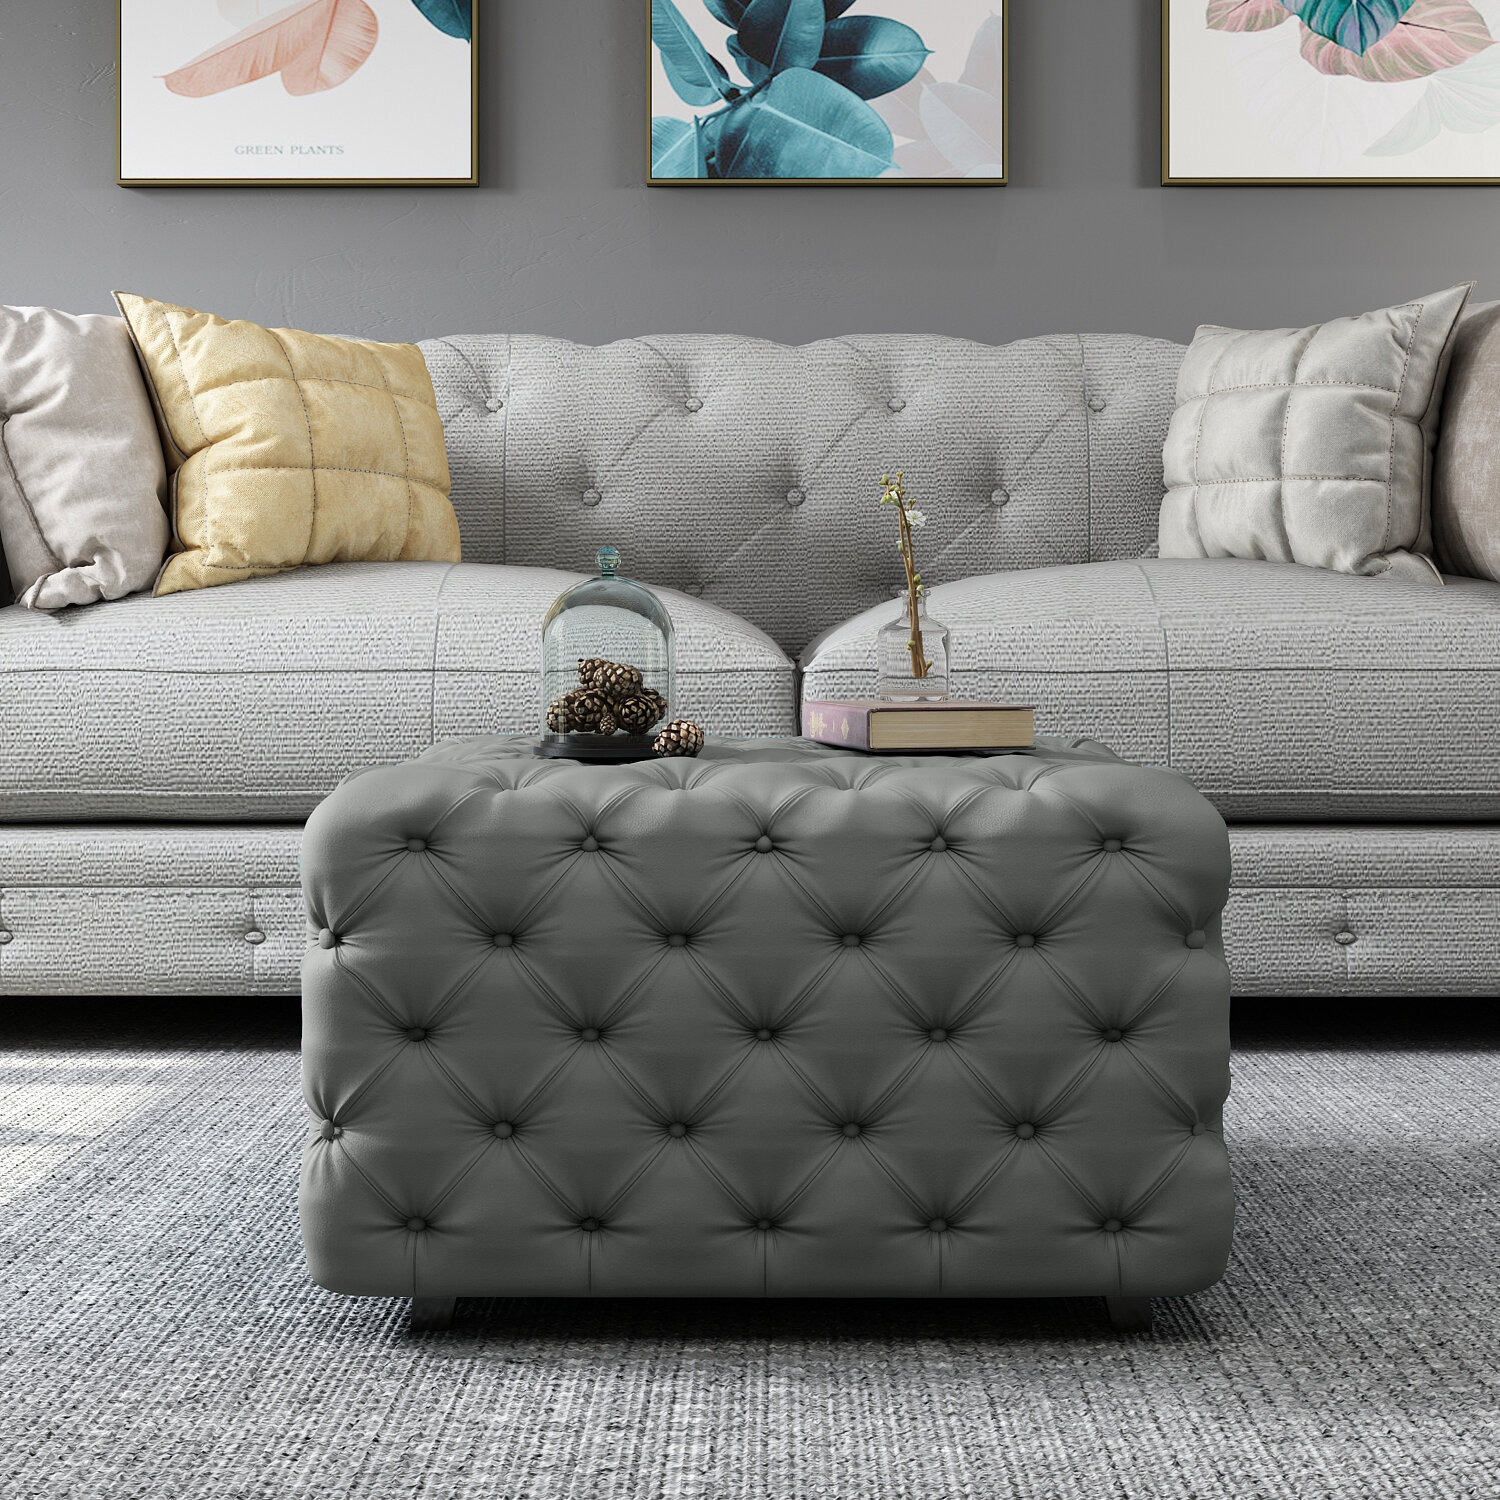 Swell Adah Square Tufted Cocktail Ottoman Gamerscity Chair Design For Home Gamerscityorg